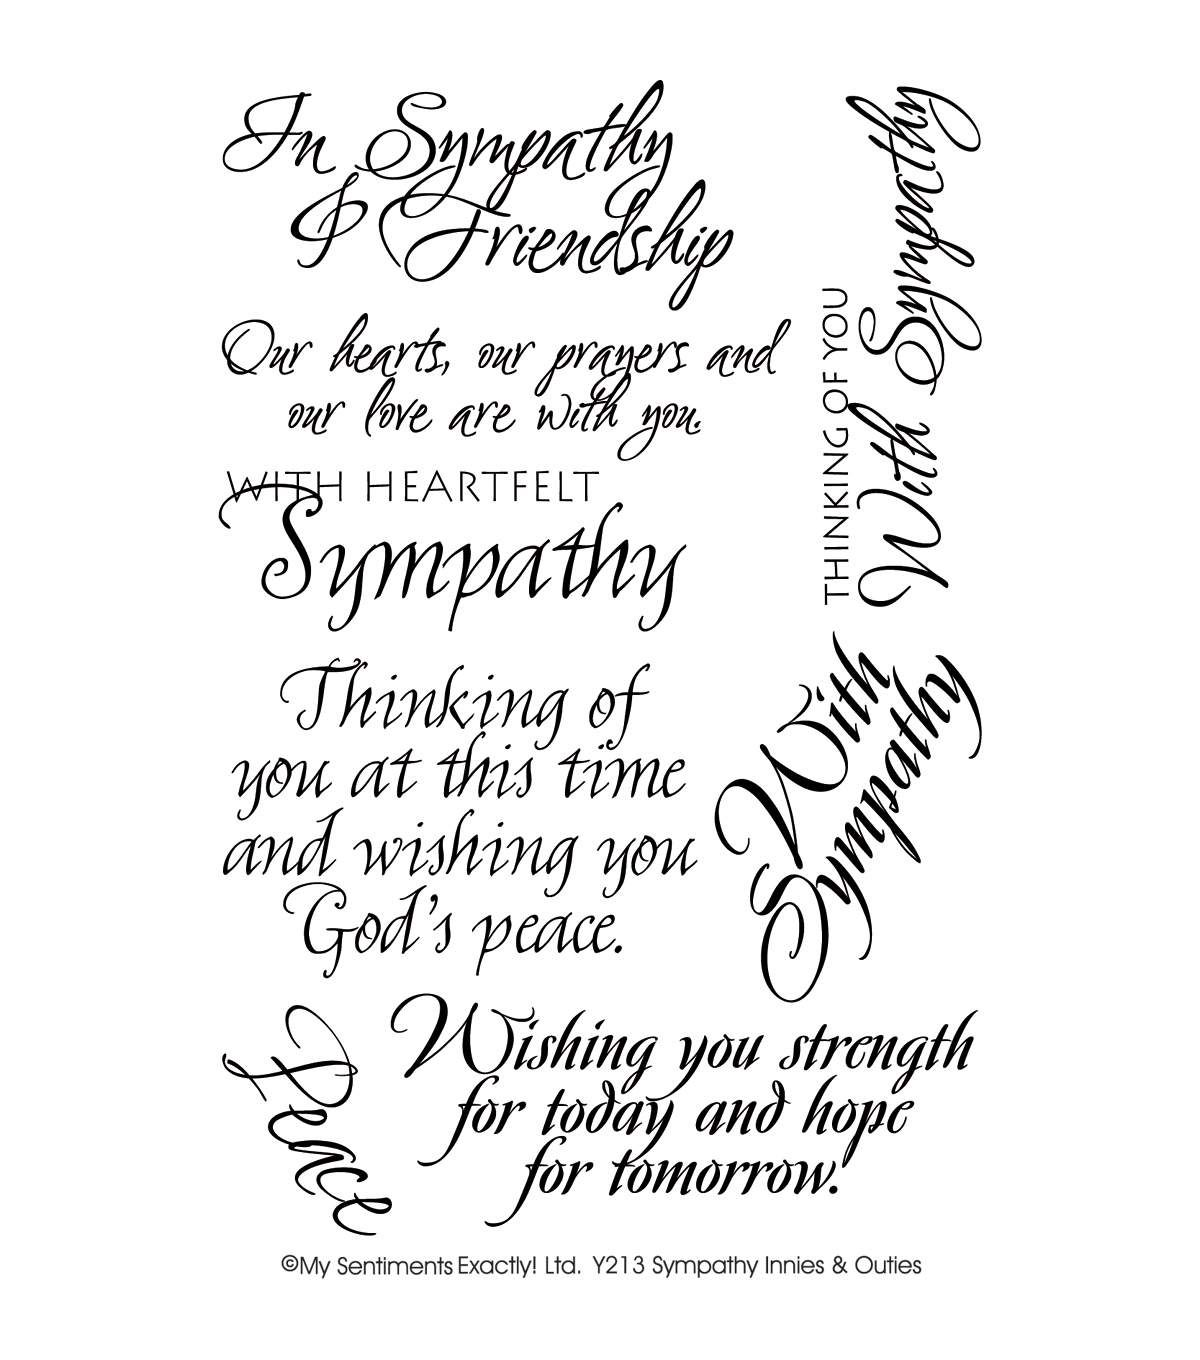 My Sentiments Exactly Clear Stamps 4x6 Sheet Sympathy Card